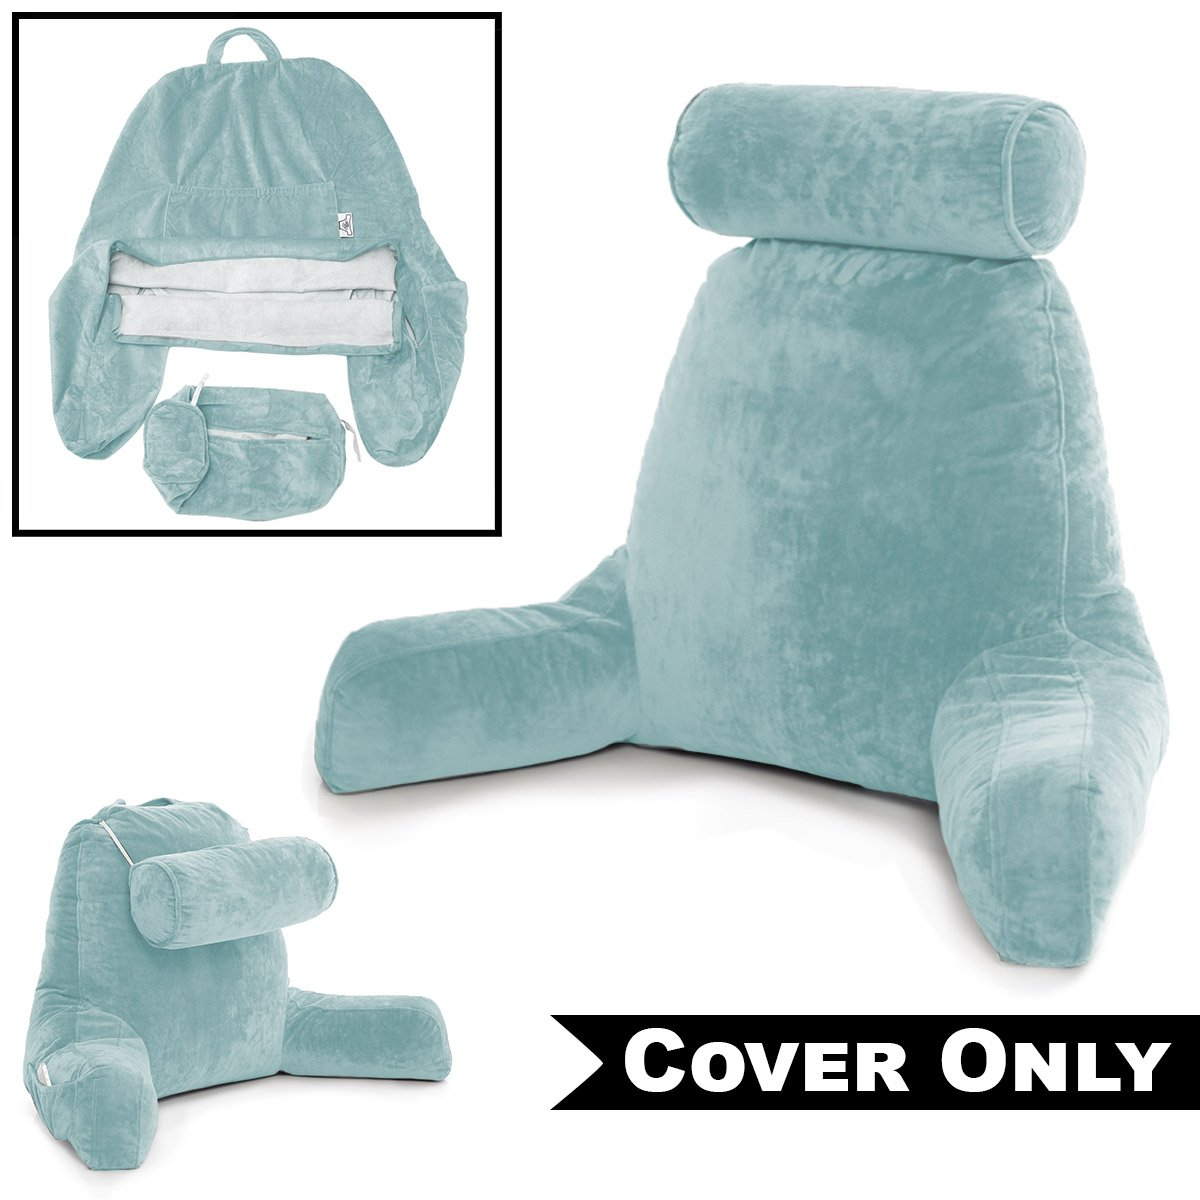 Sky Blue COVER ONLY - For the Husband Pillow - Bedrest Cover Set - Support Bed Backrest Covers , Micro Plush Cover Including Detachable Neck Roll Pillow Cover